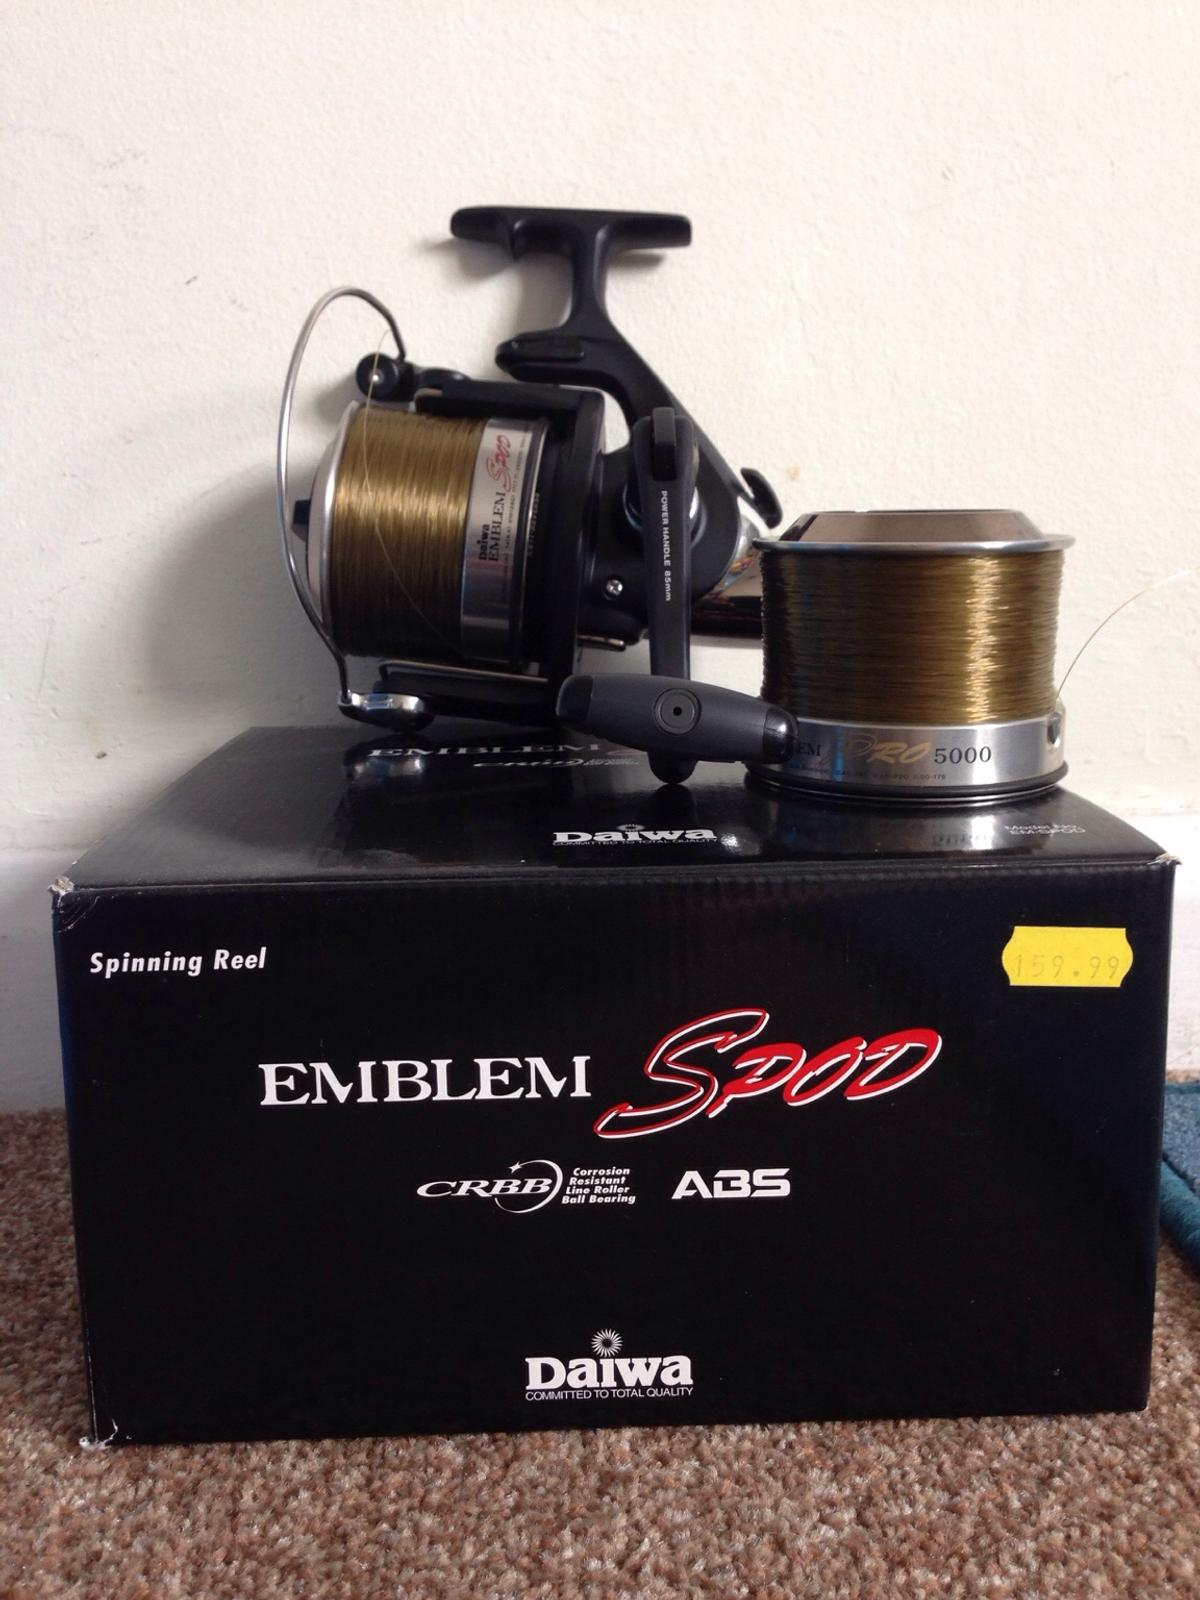 daiwa emblem spod reel mint condition L@@K